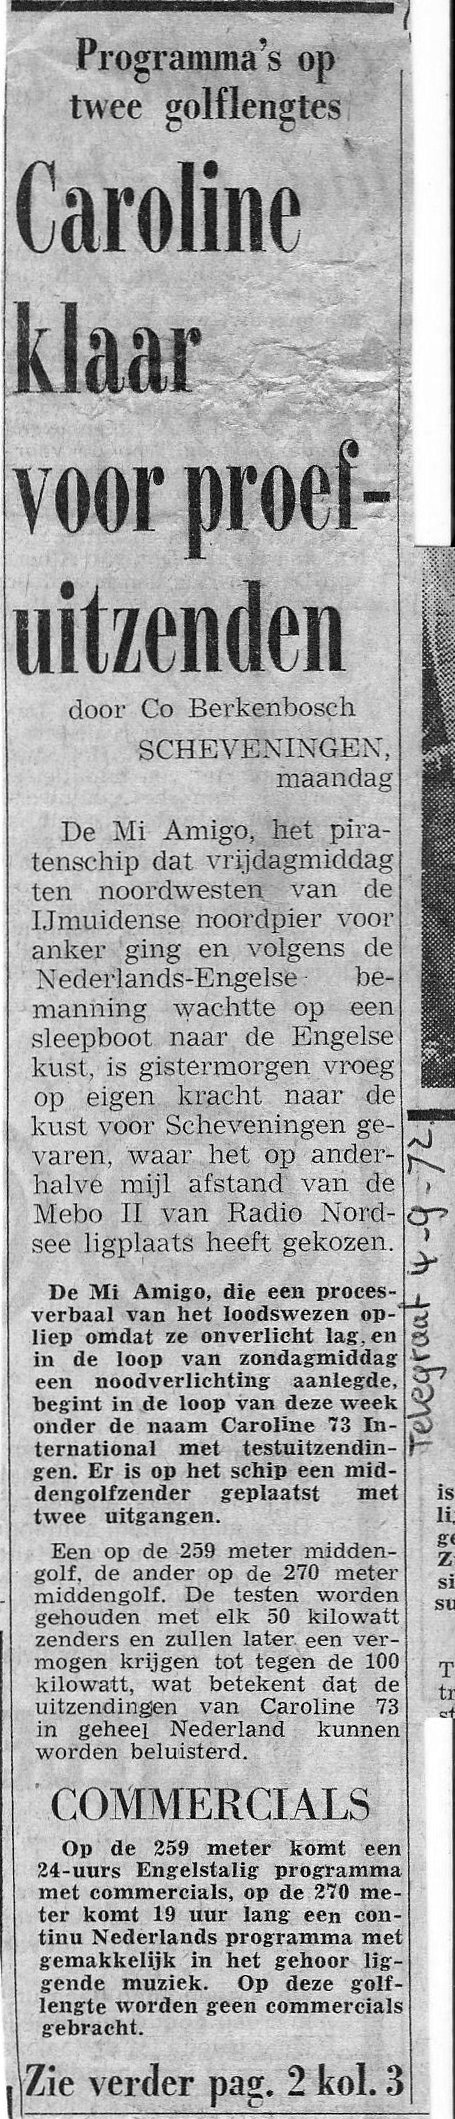 De Telegraaf 4th September 1972